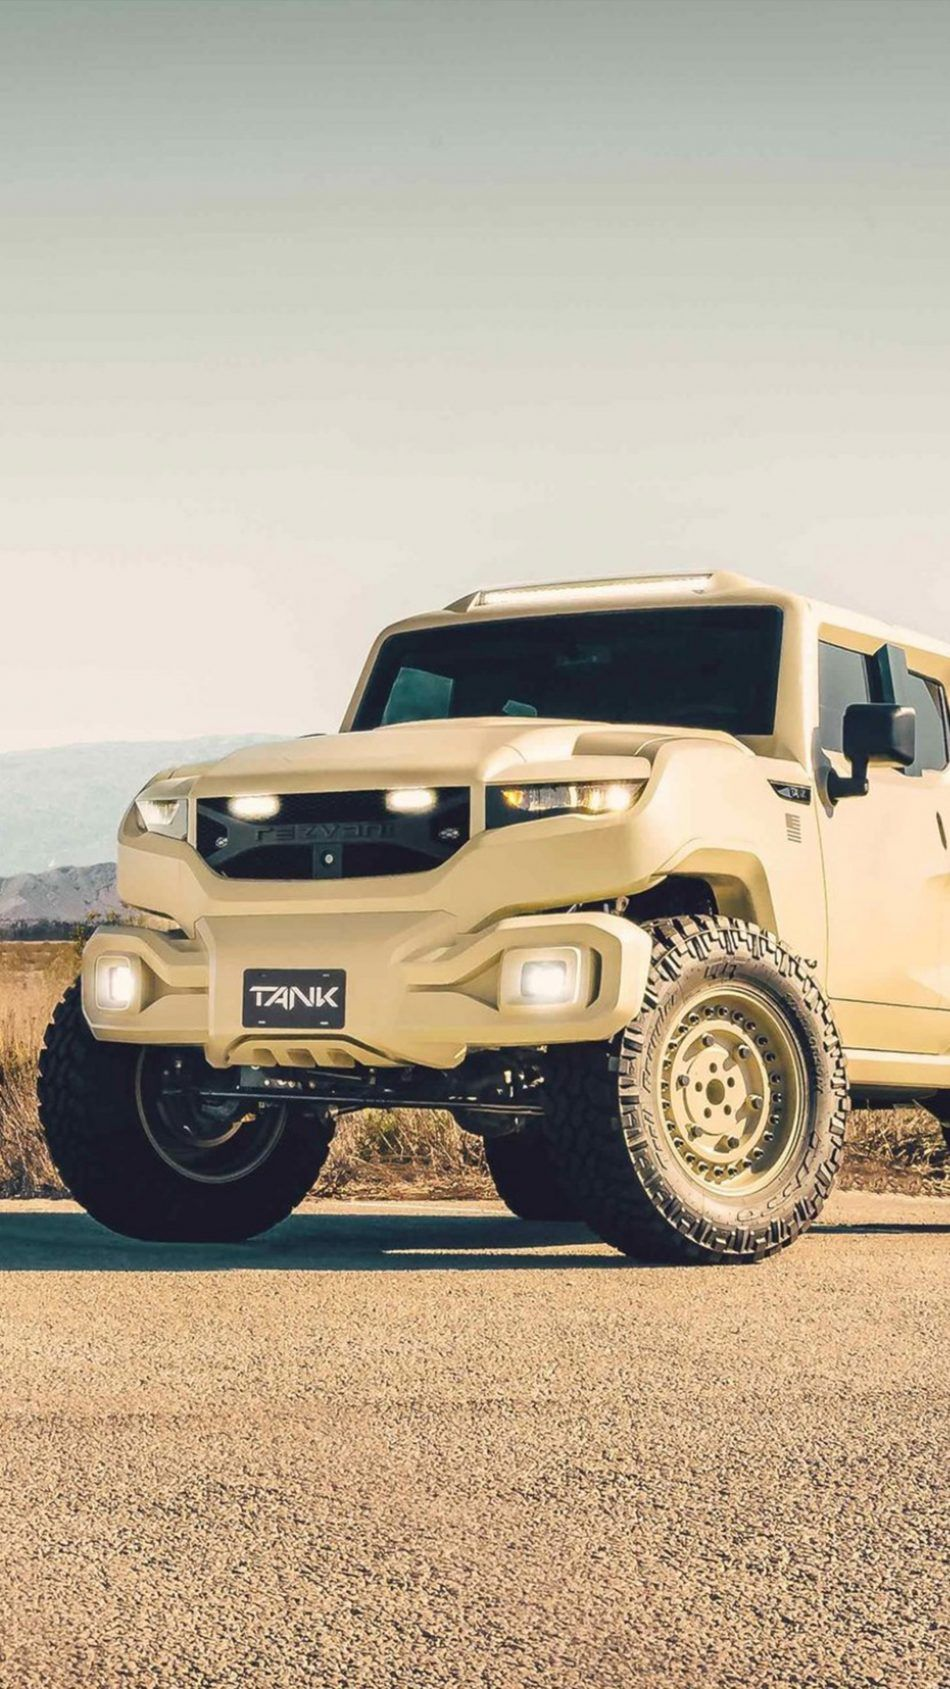 Rezvani Tank Military Suv Tanks Military Armored Truck